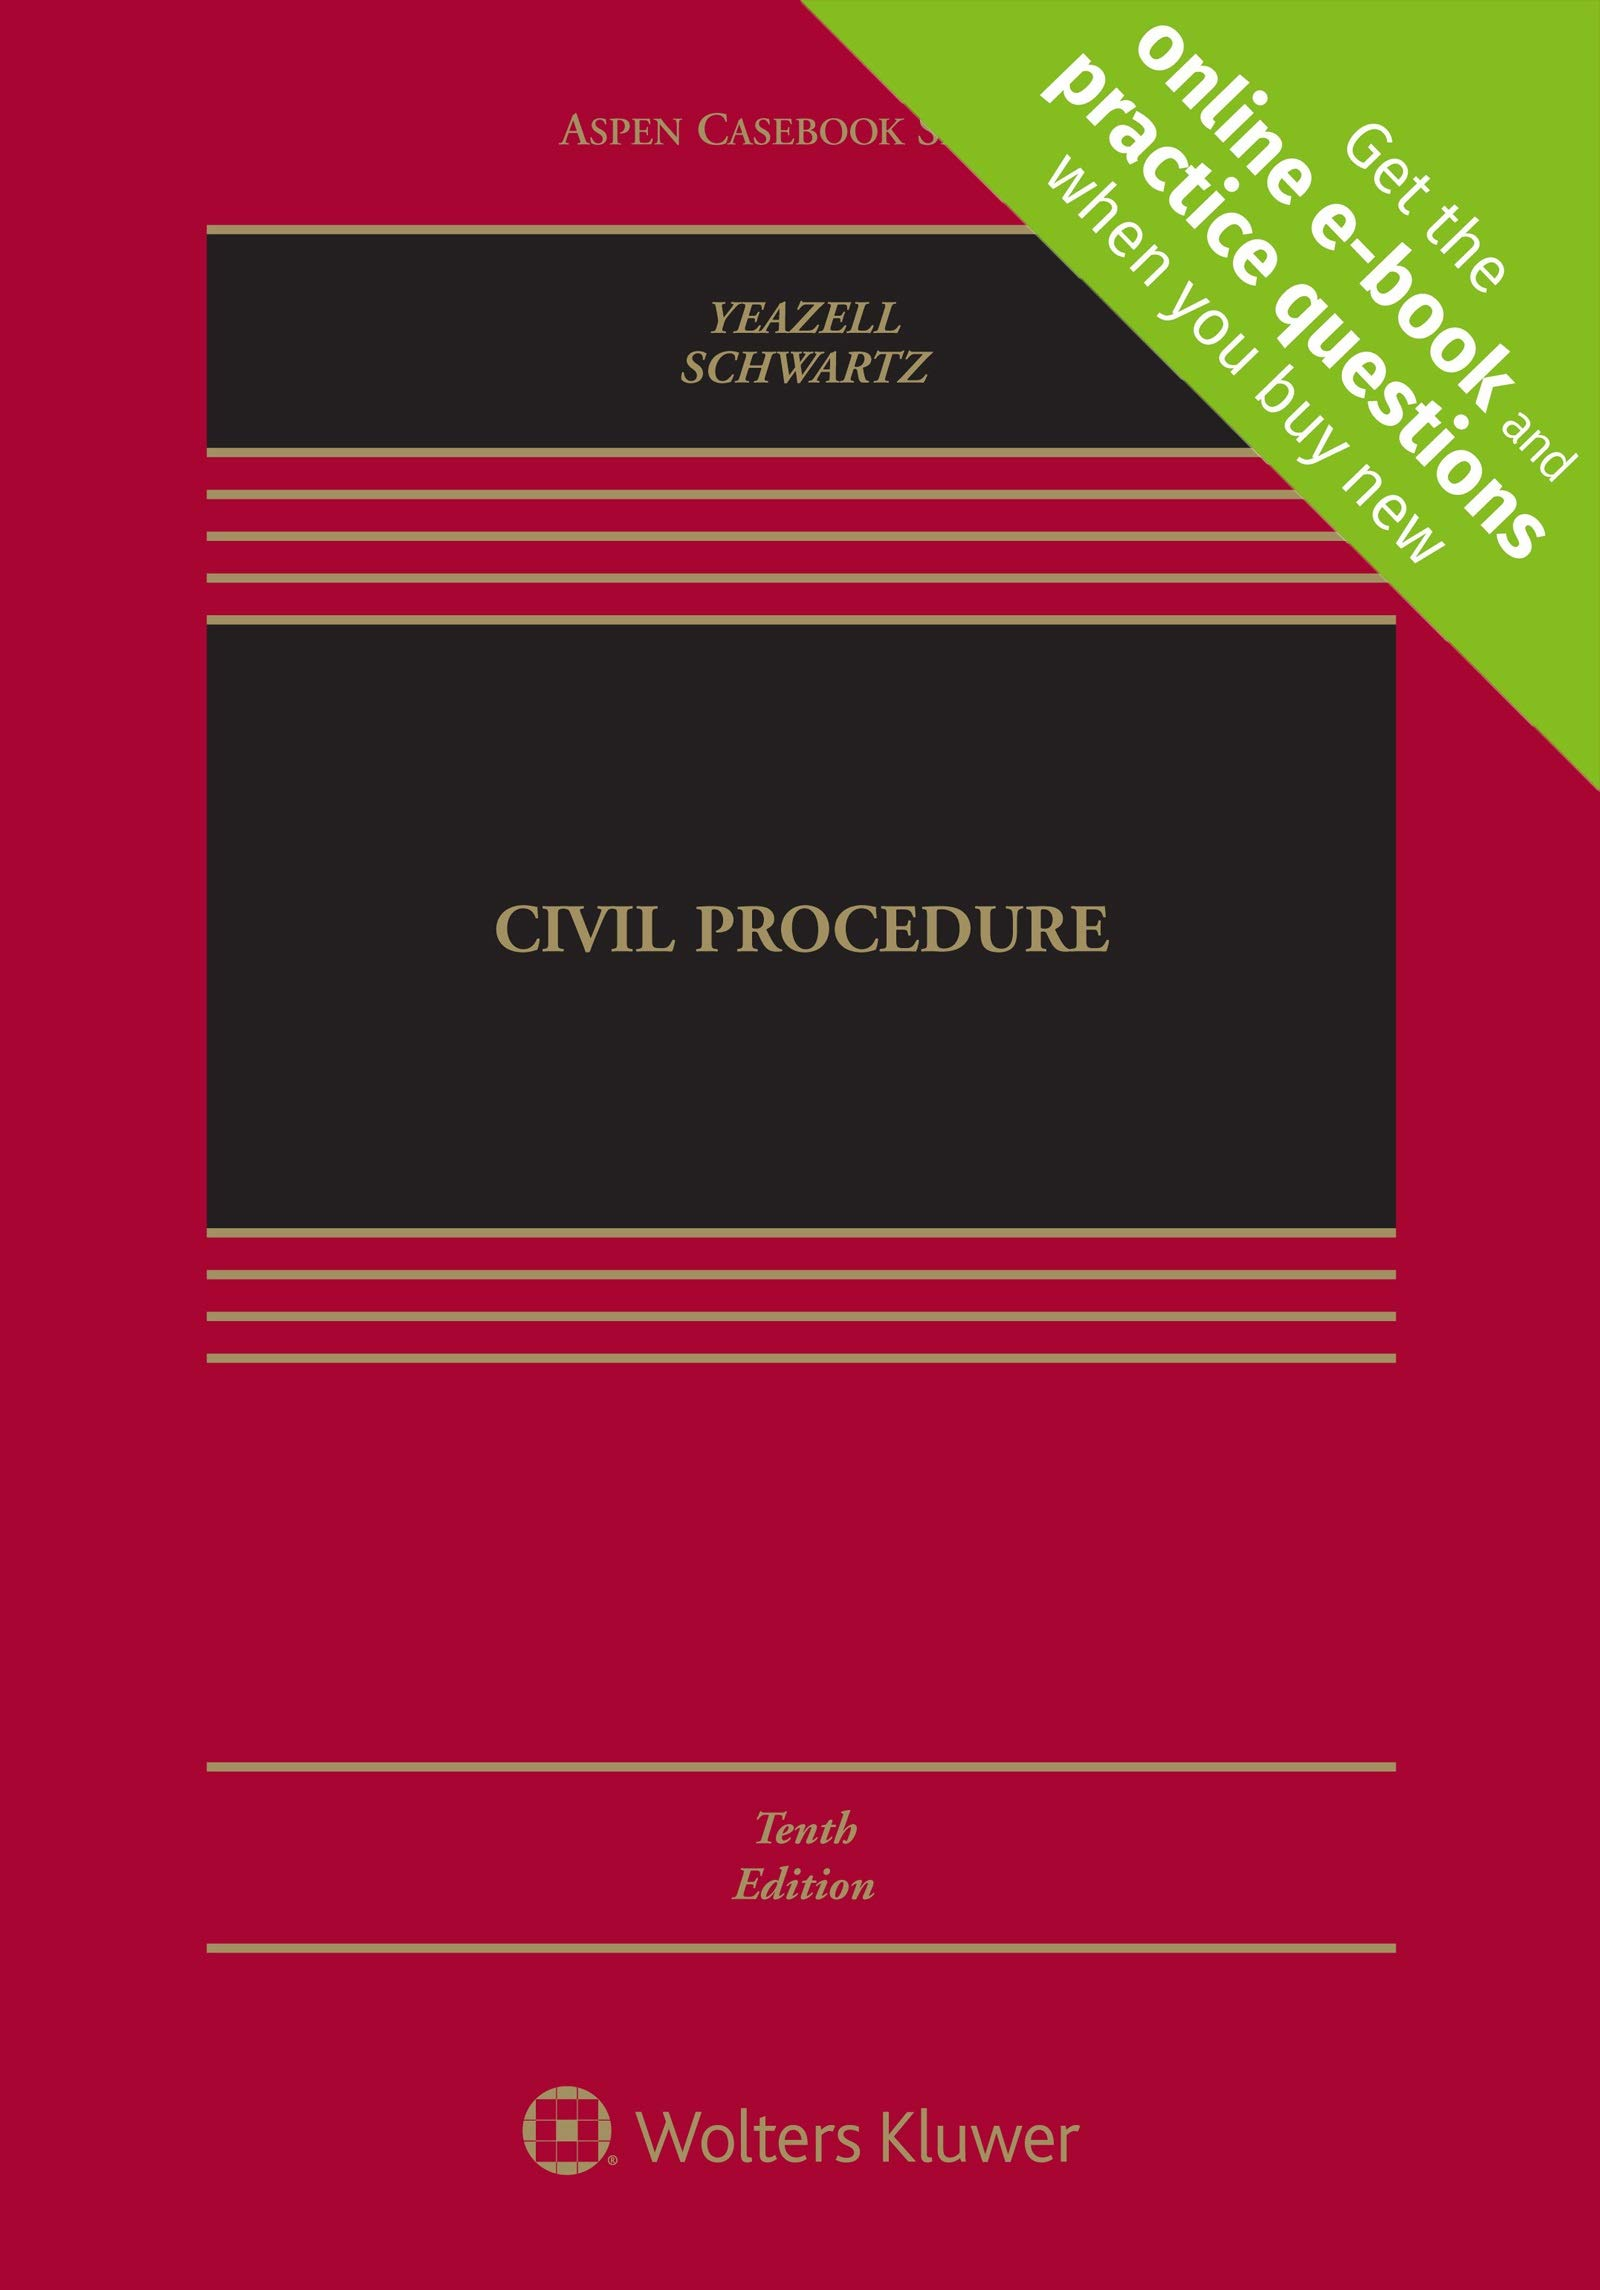 Civil Procedure [Connected Casebook] (Aspen Casebook) by Wolters Kluwer